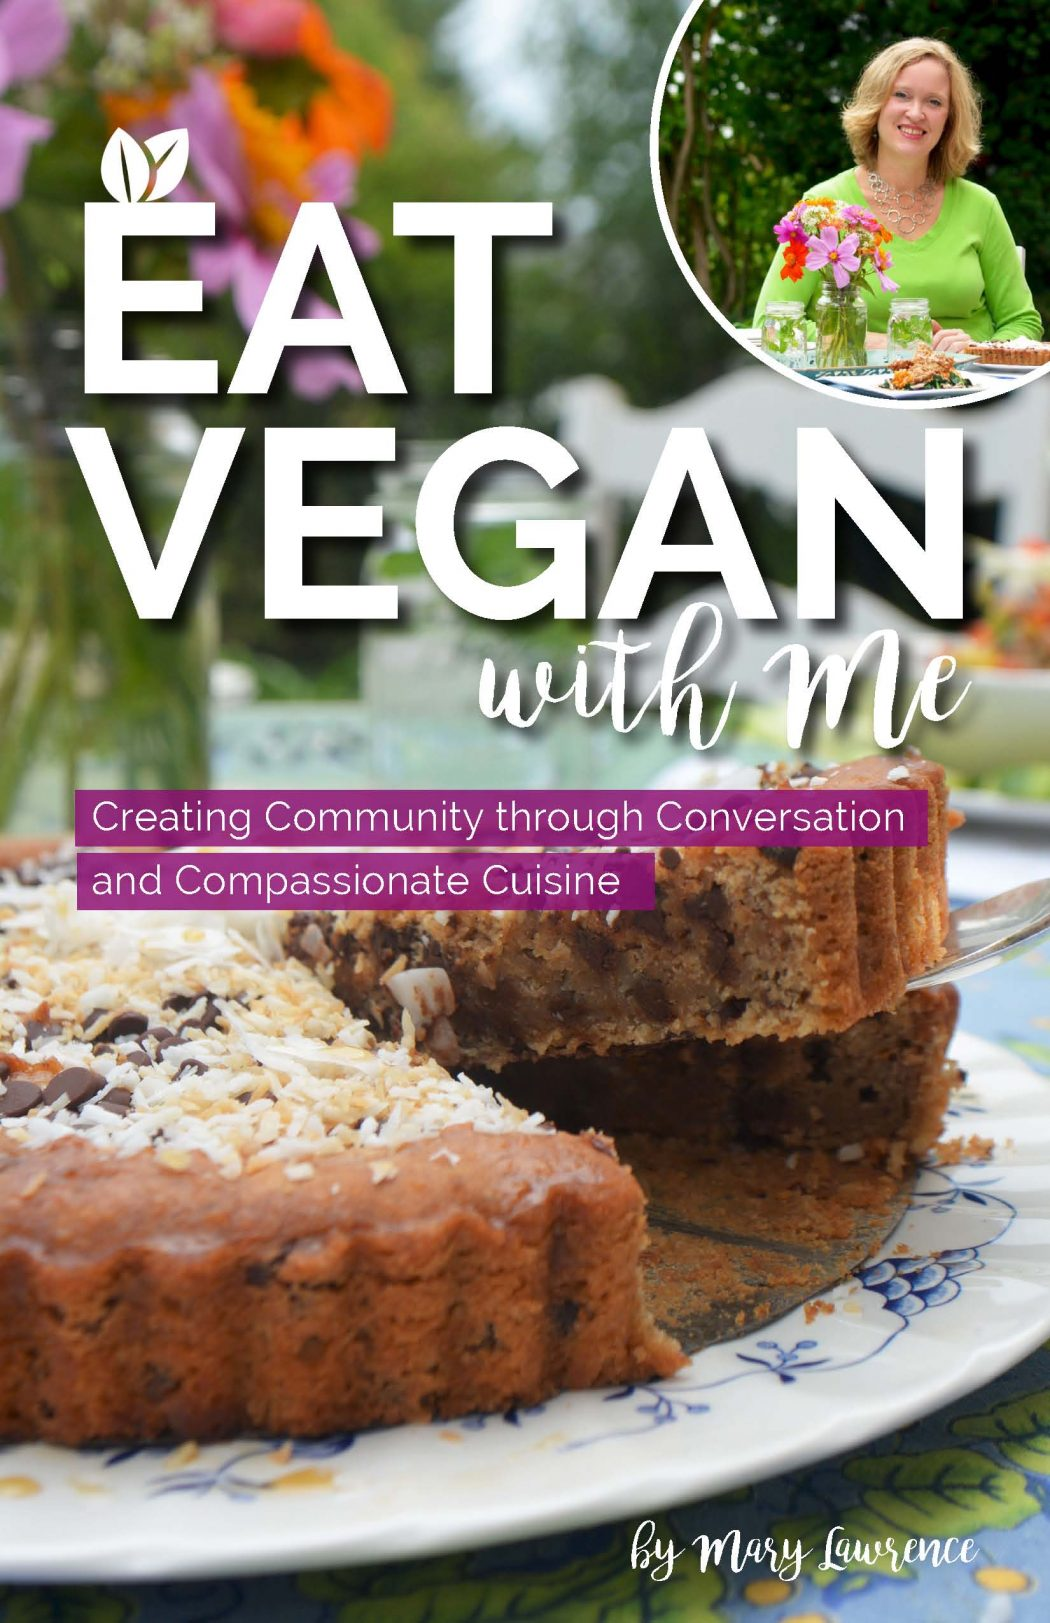 Photos for eat vegan with me cookbook annika lundkvist photography very happy to share news of this beautiful cookbook for which i did the photography for it was an absolute pleasure working with author chef mary forumfinder Gallery